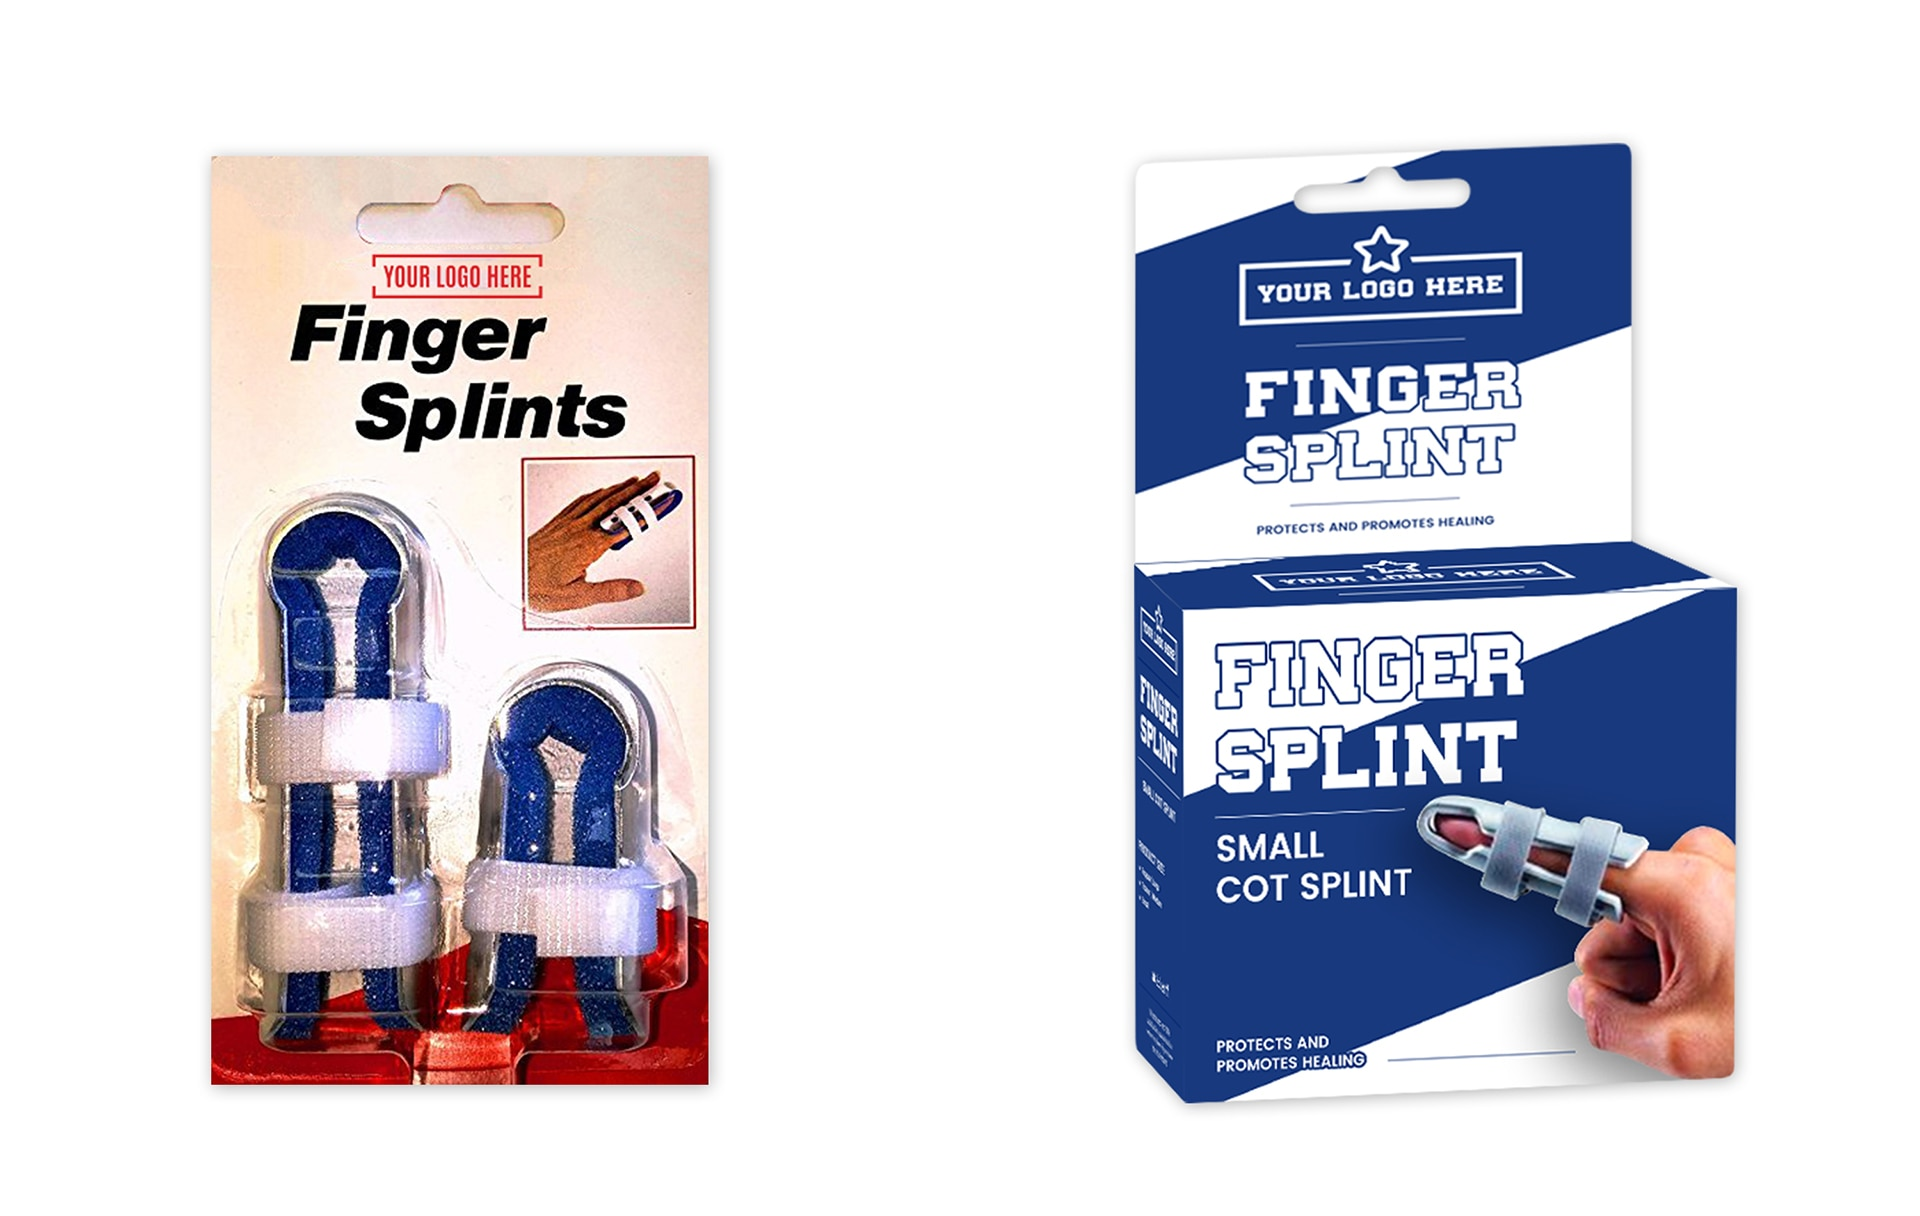 blister pack and boxes for finger splint private label